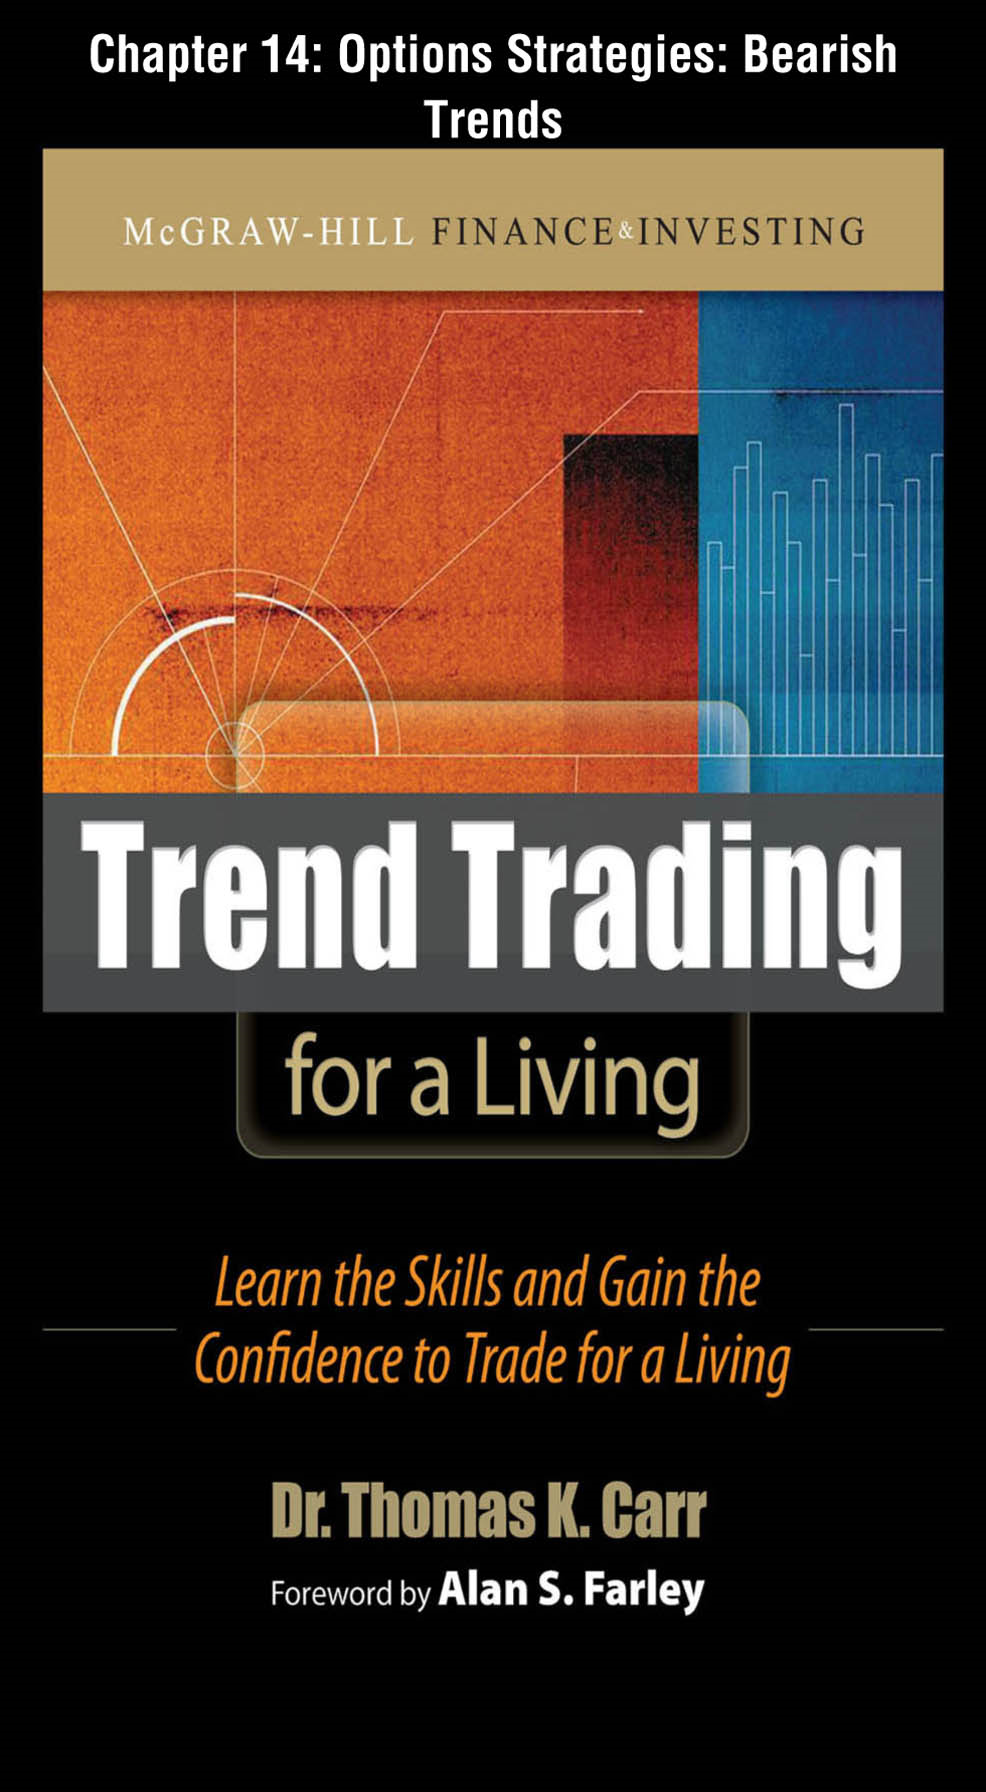 Trend Trading for a Living, Chapter 14 - Options Strategies: Bearish Trends By: Thomas K. Carr